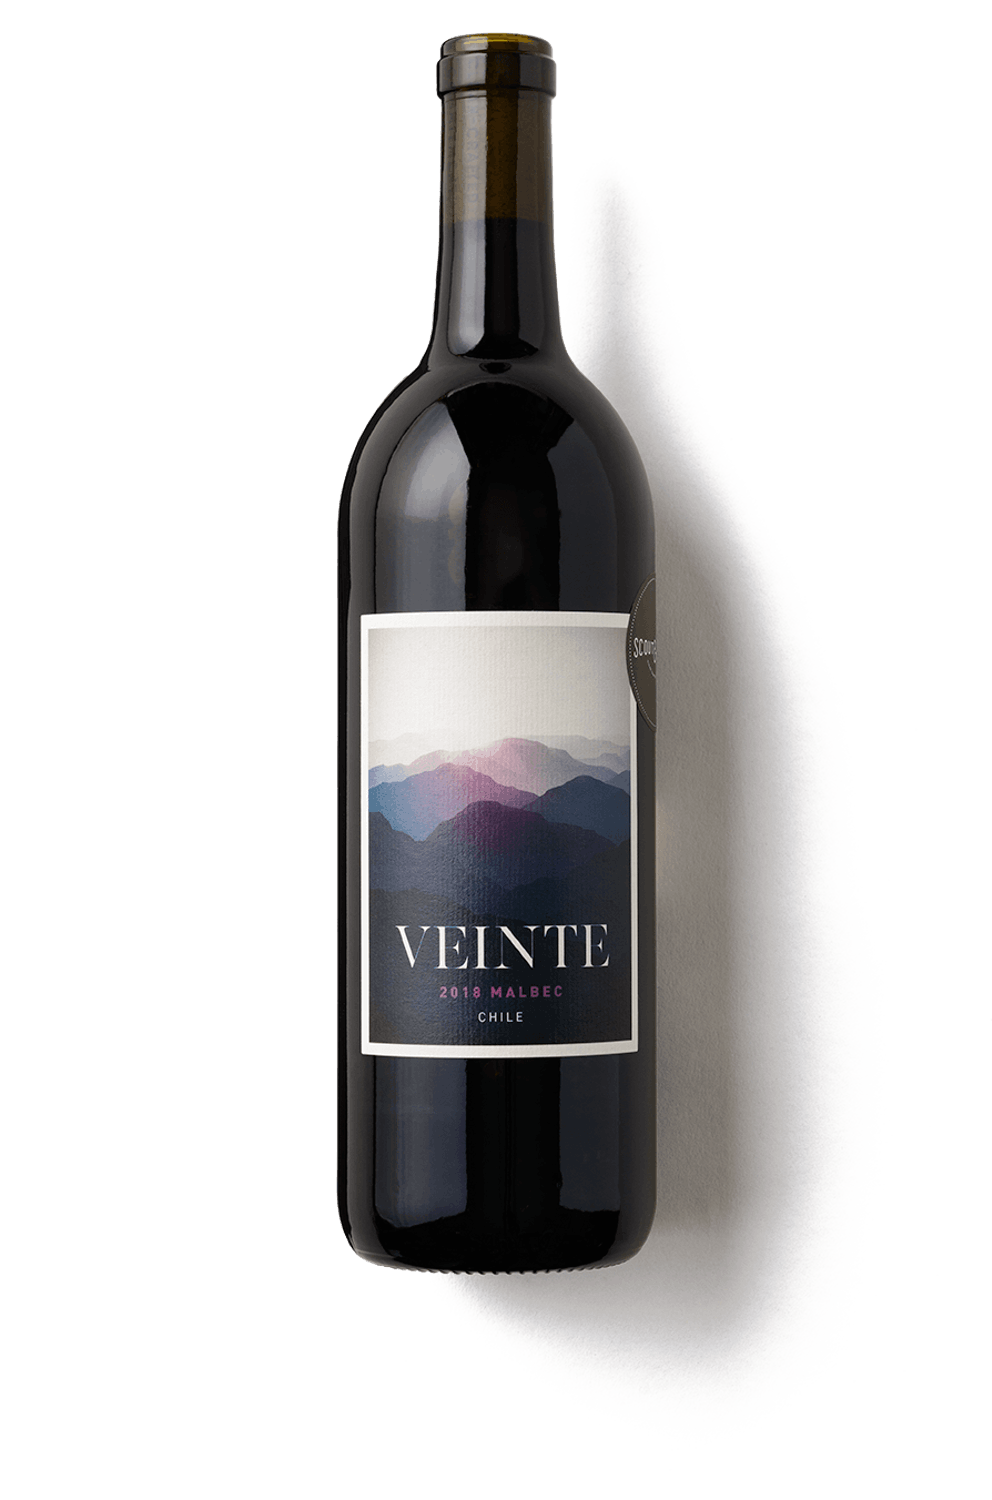 2018 Veinte Malbec Scout Cellar Clean Crafted Wine